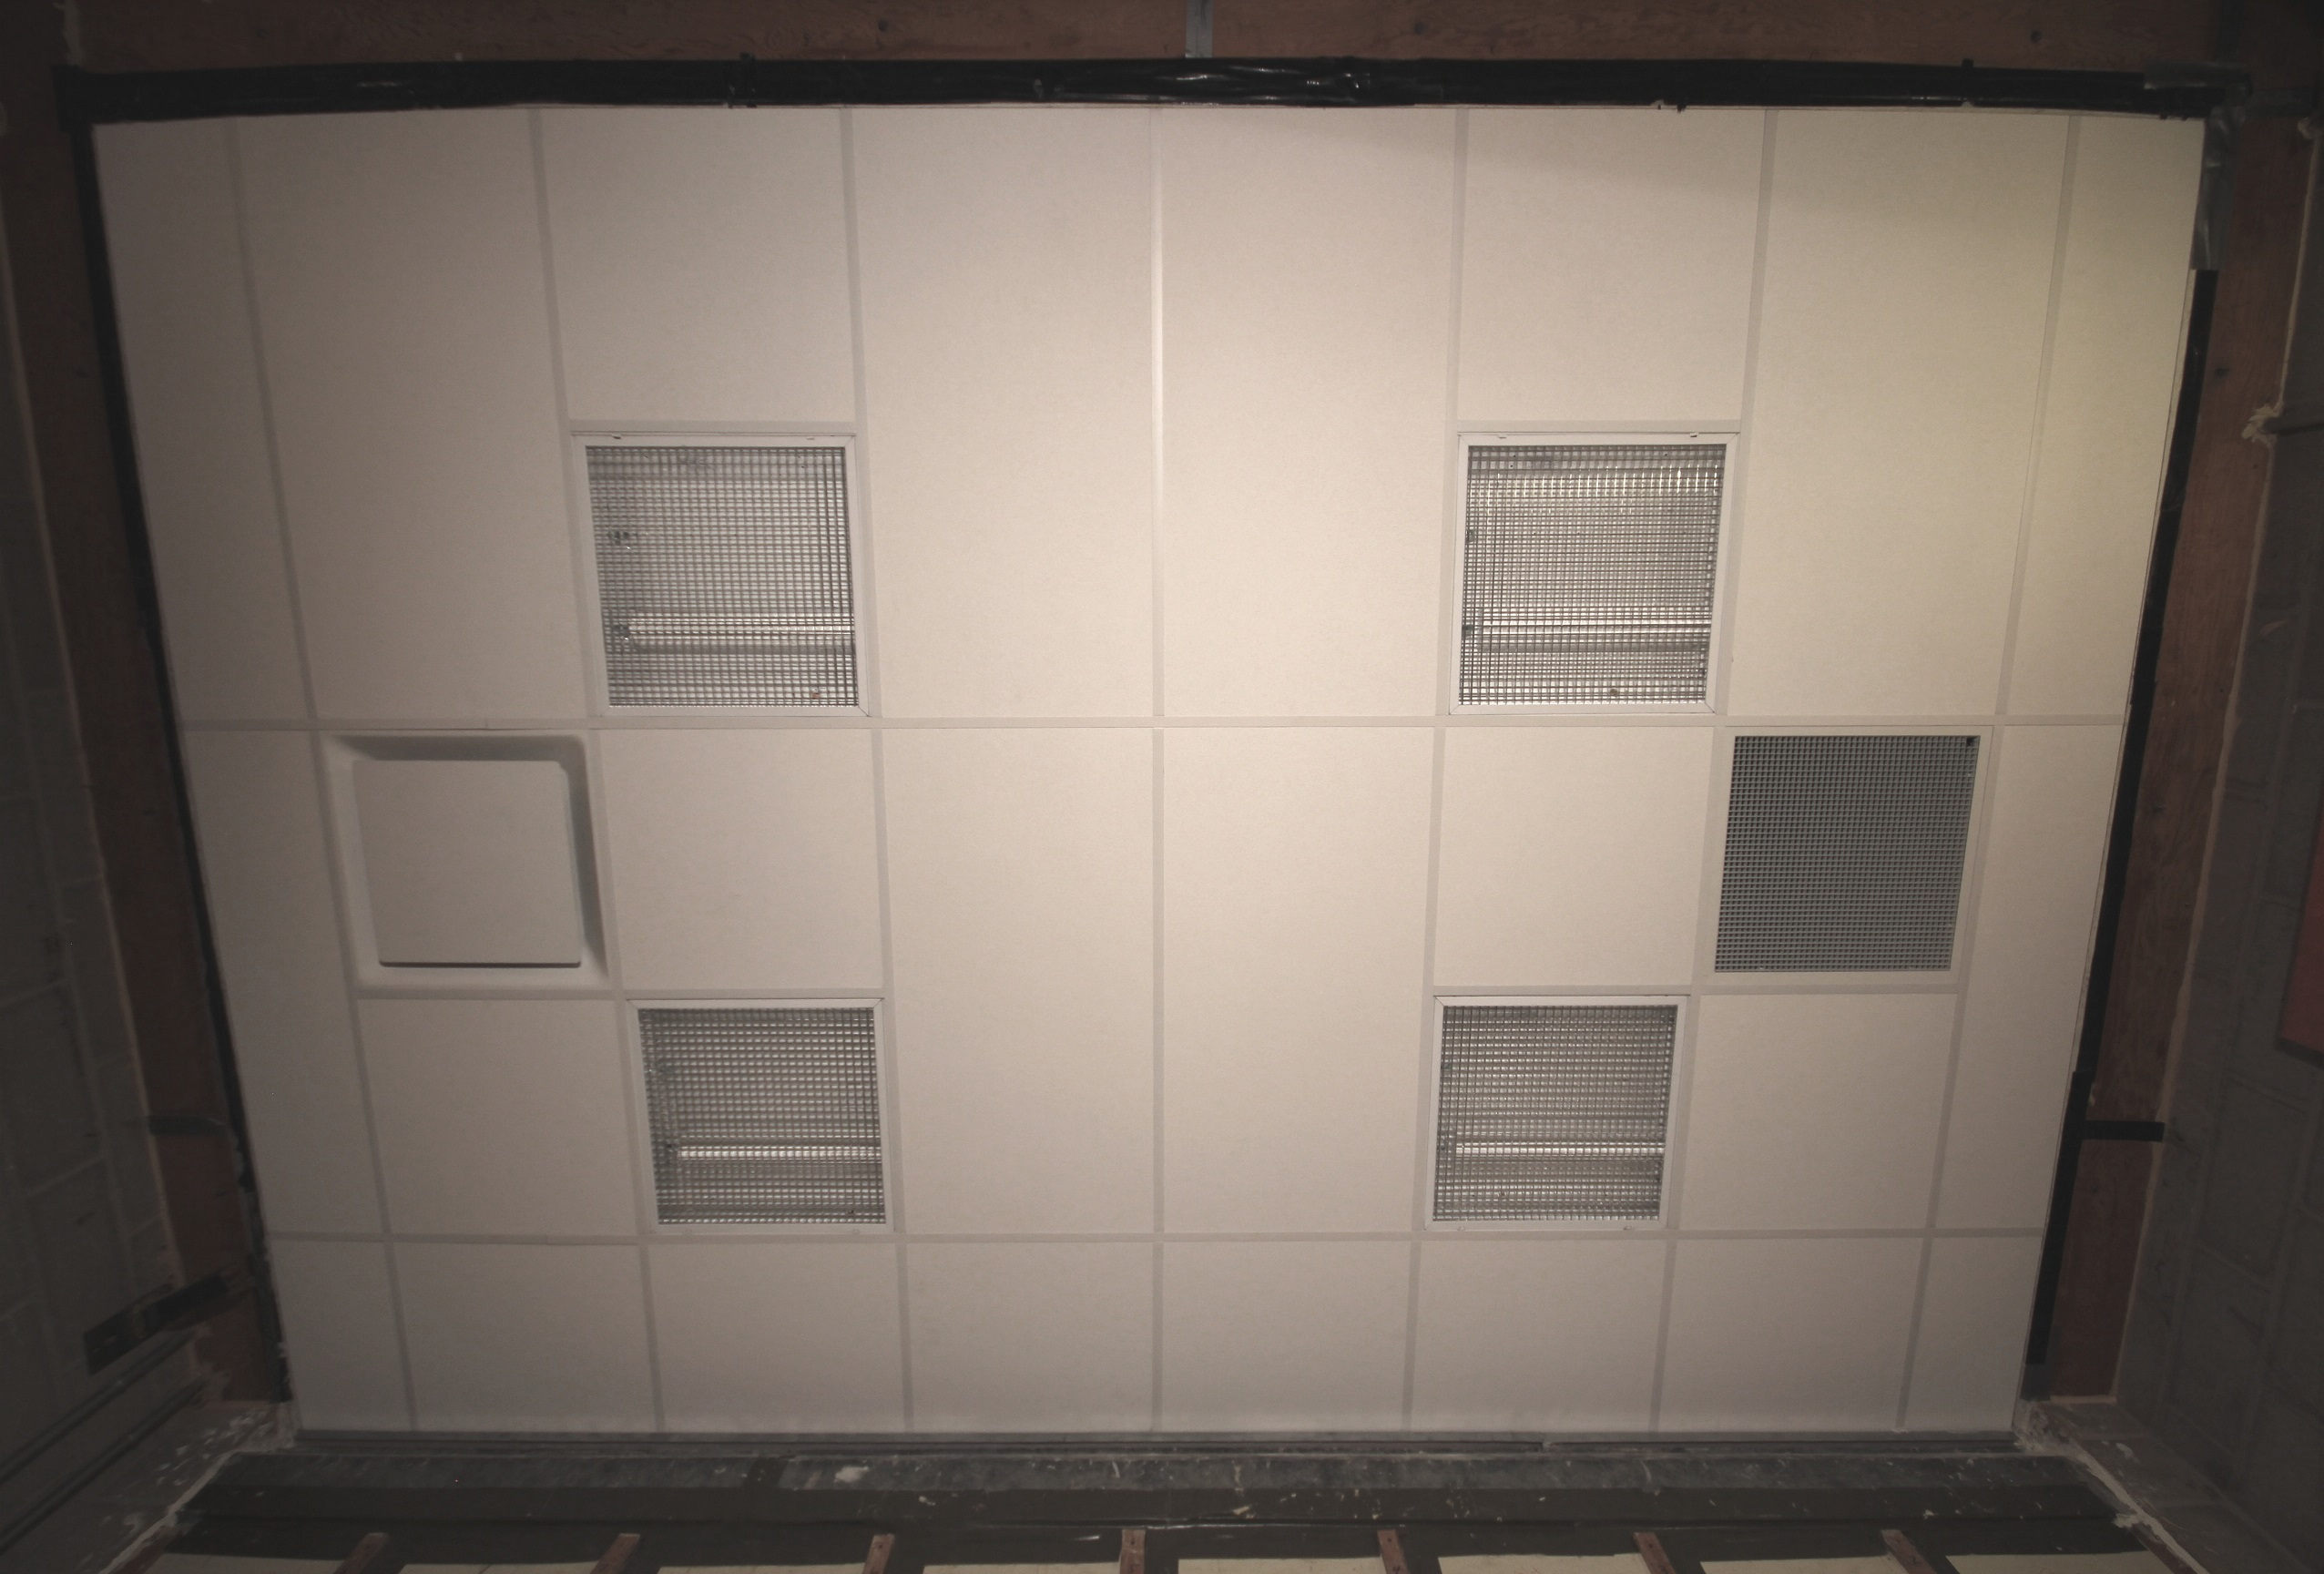 Using Acoustic Plenum Barriers above Interior Partitions to Comply